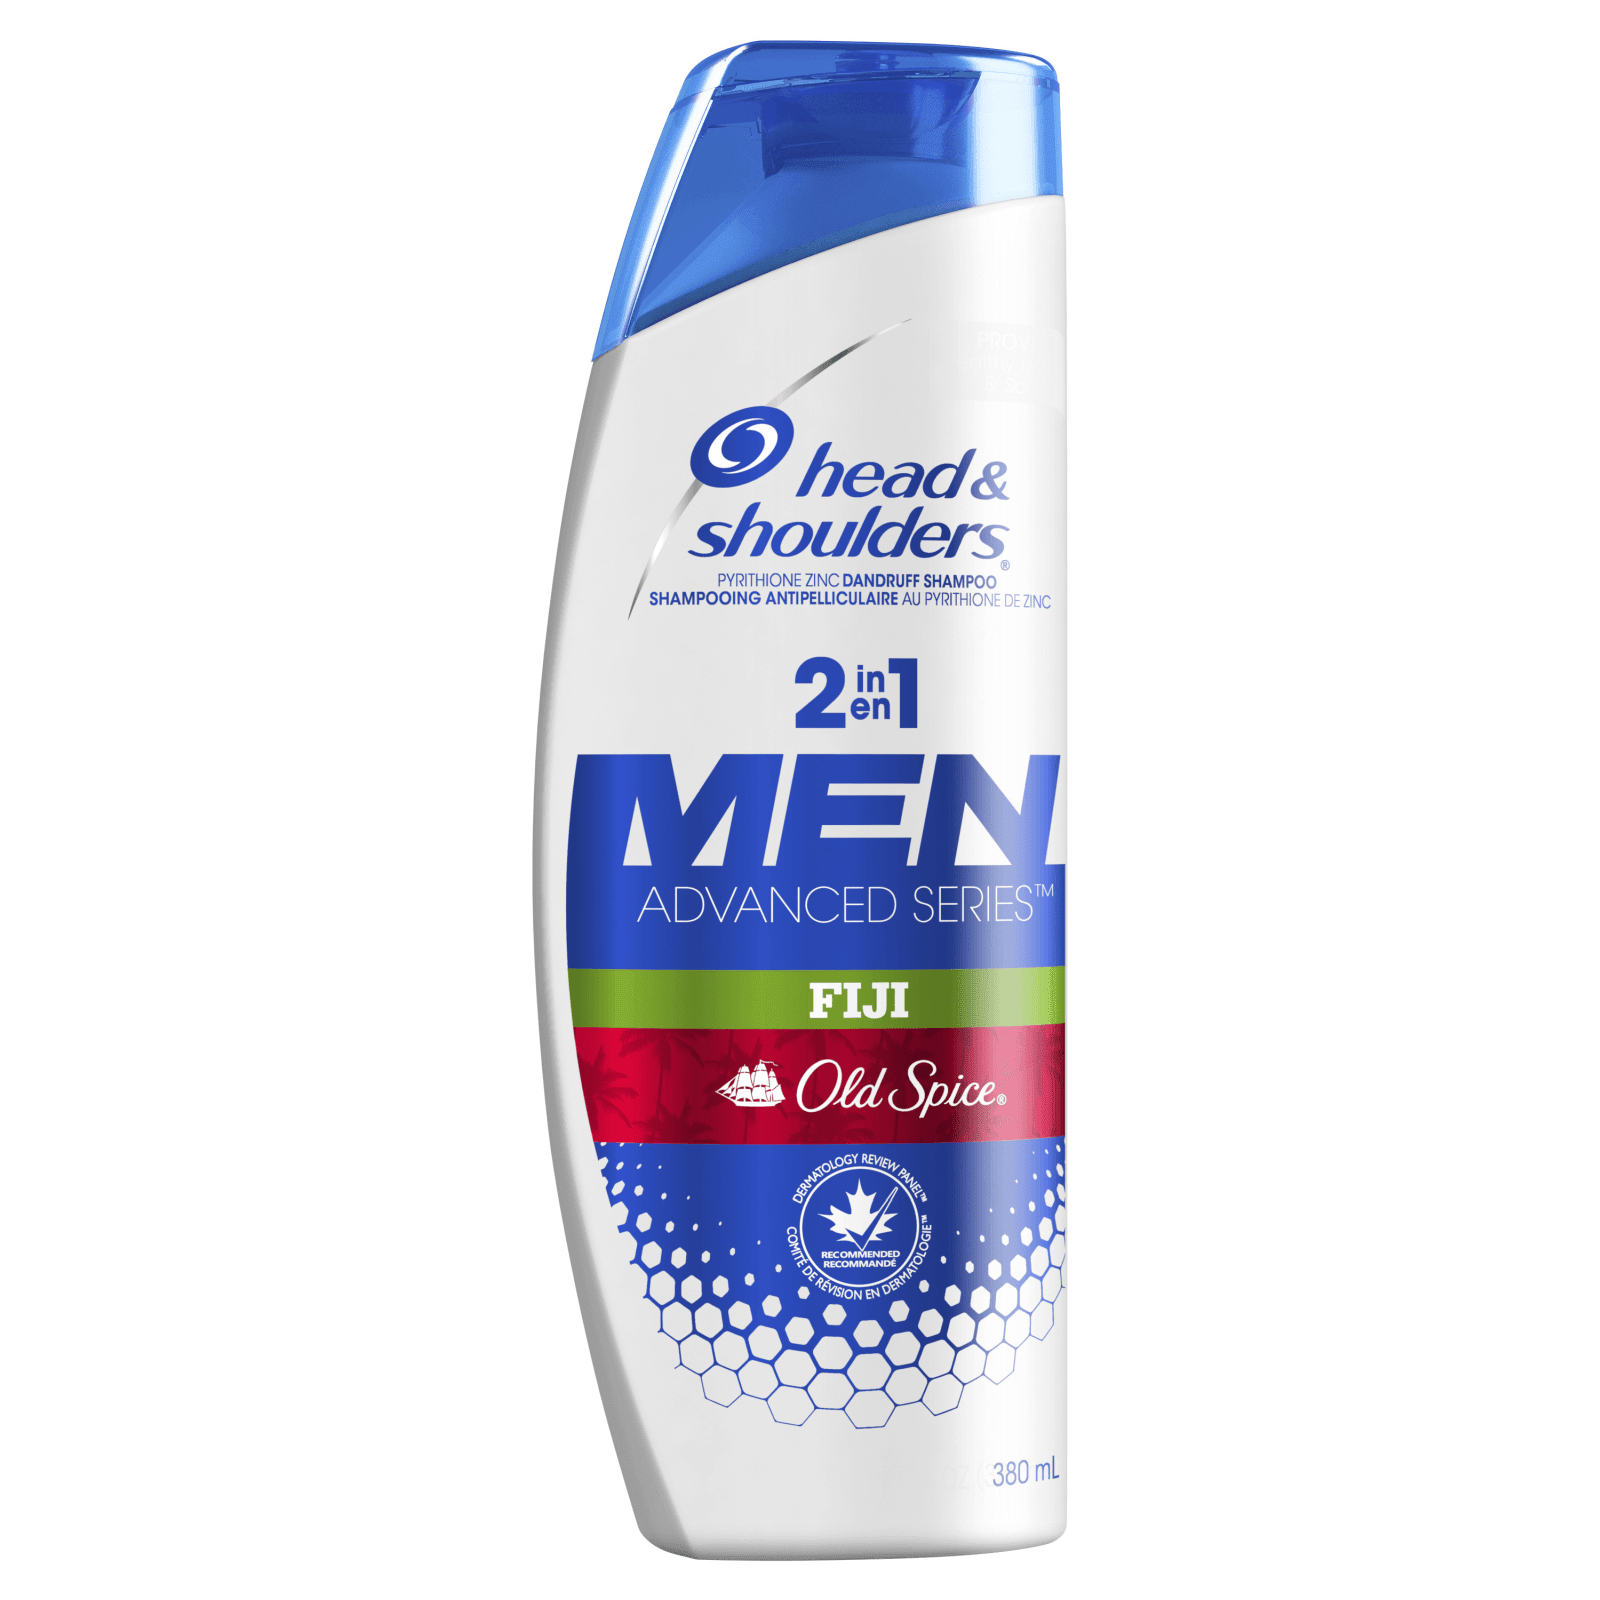 Shampooing Antipelliculaire 2 En 1 Pour Hommes Old Spice Fiji